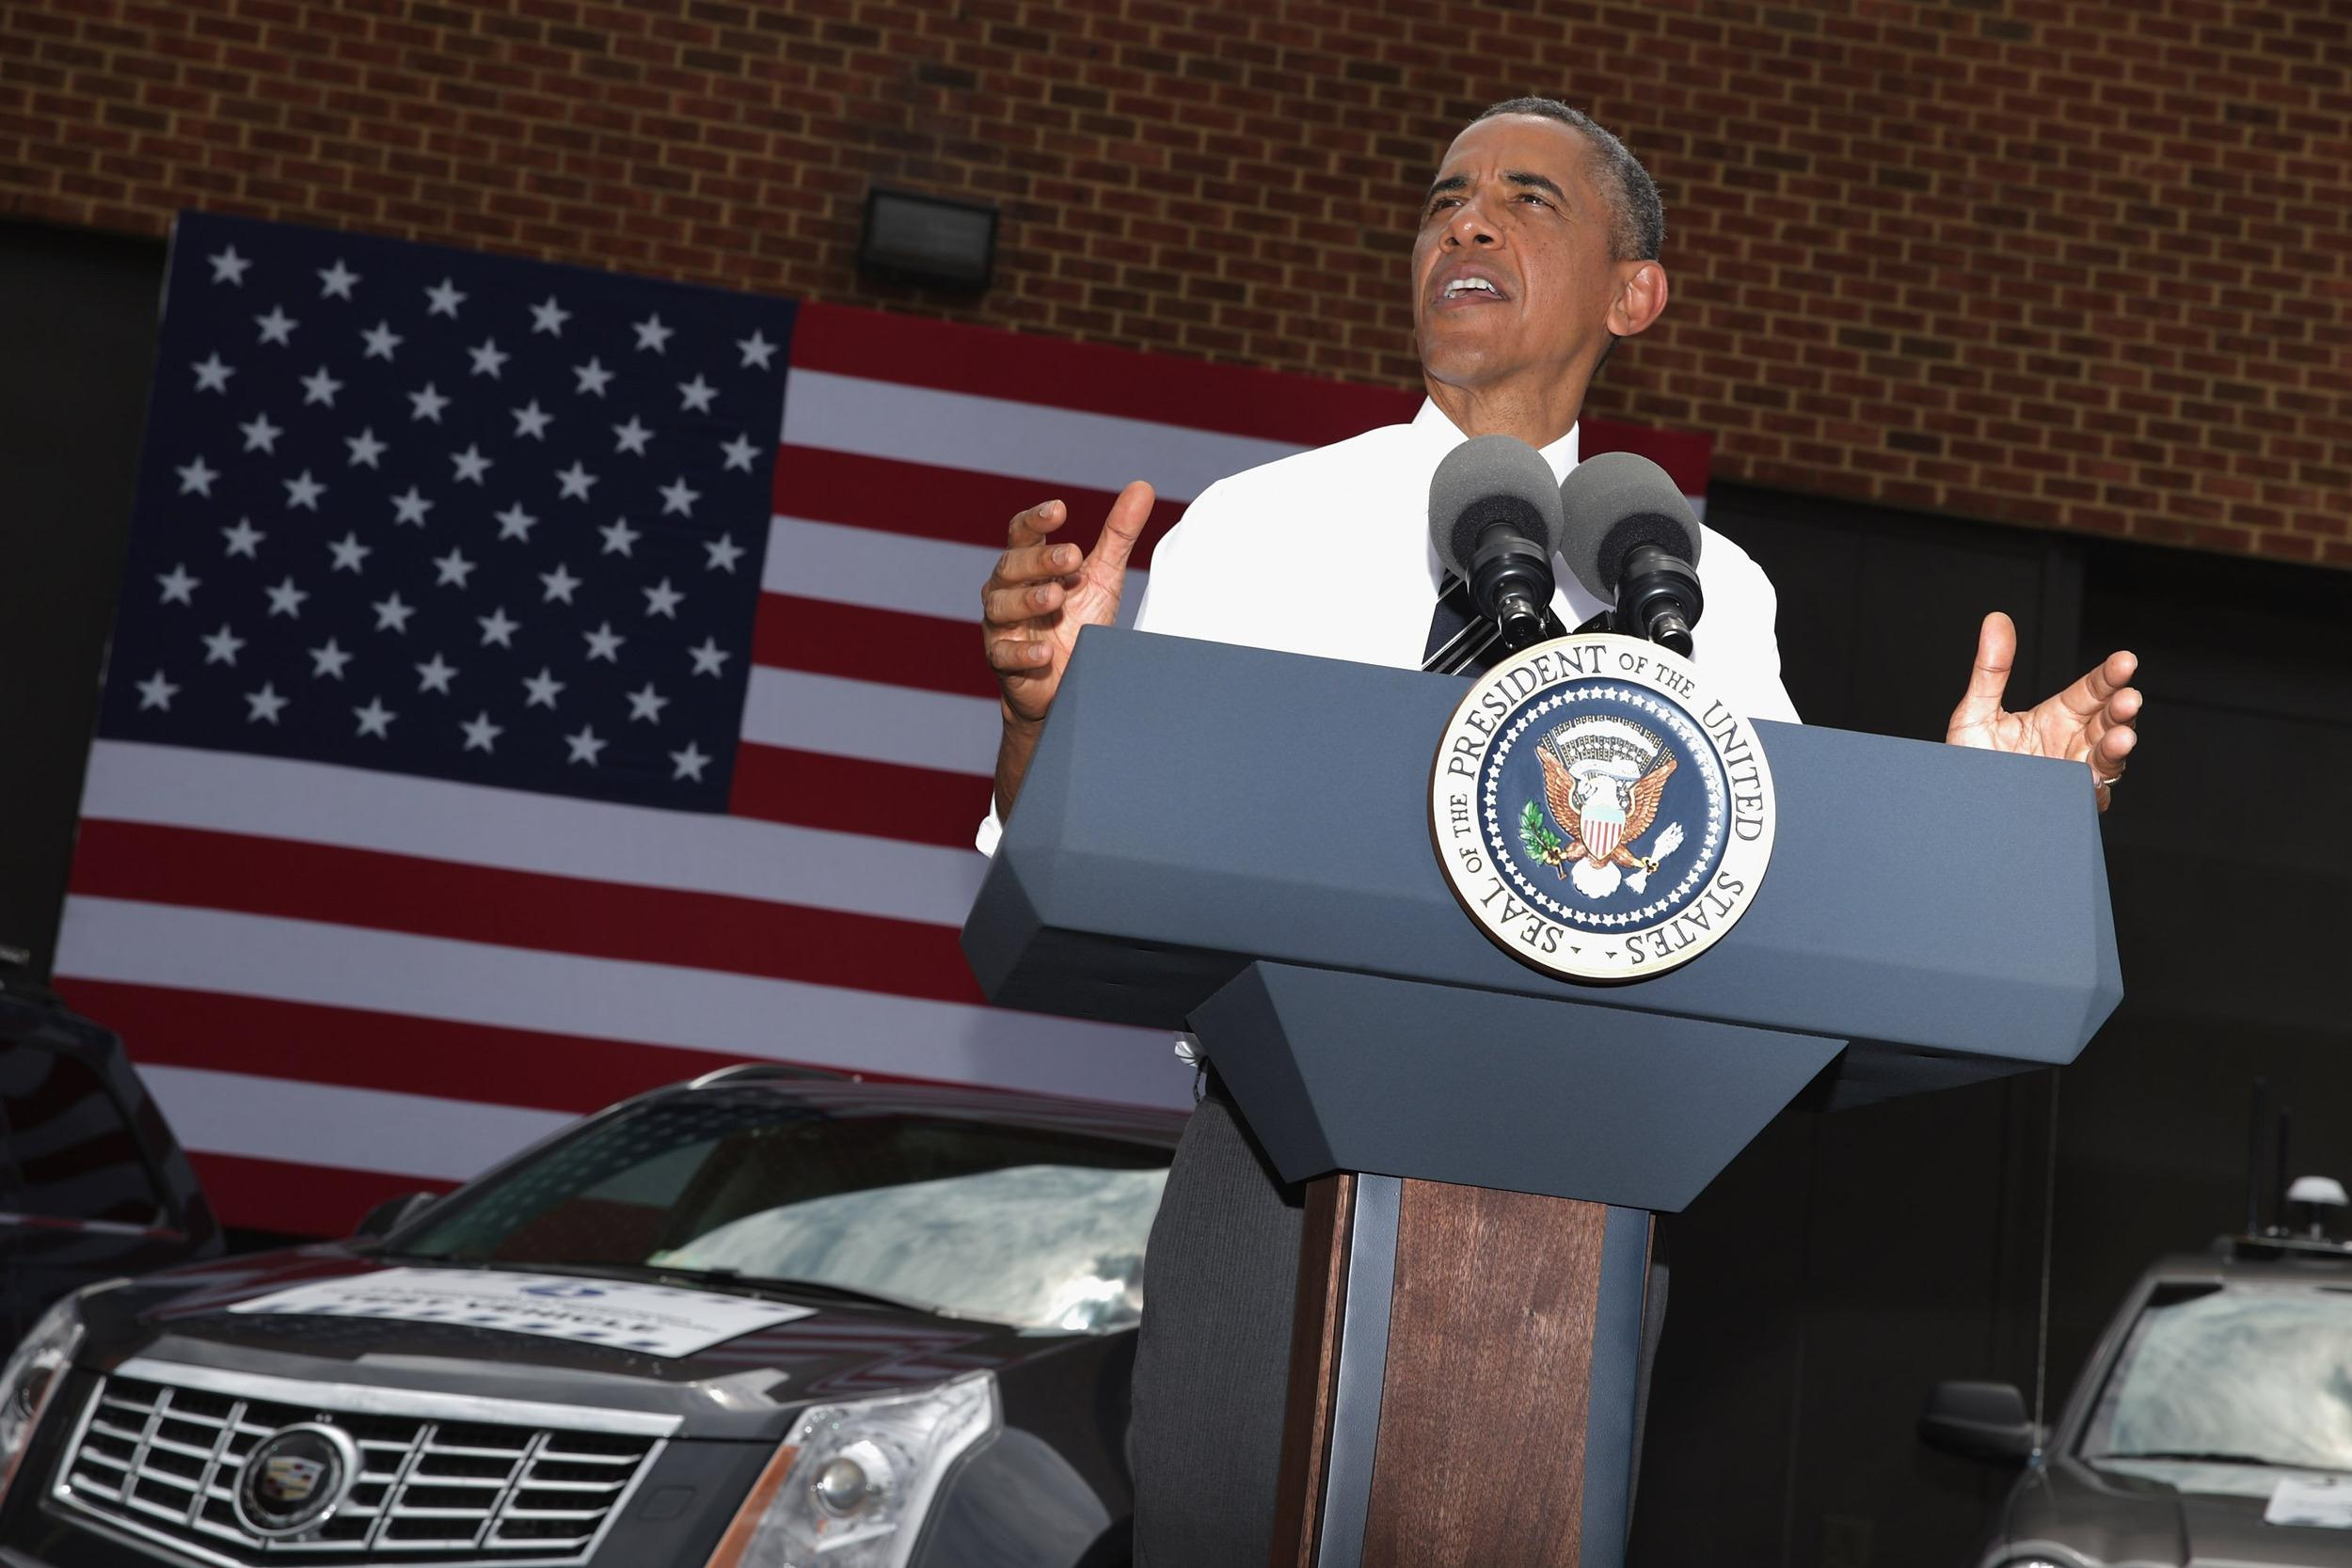 Image: President Obama Speaks On The Economy At The Turner-Fairbank Highway Research Center